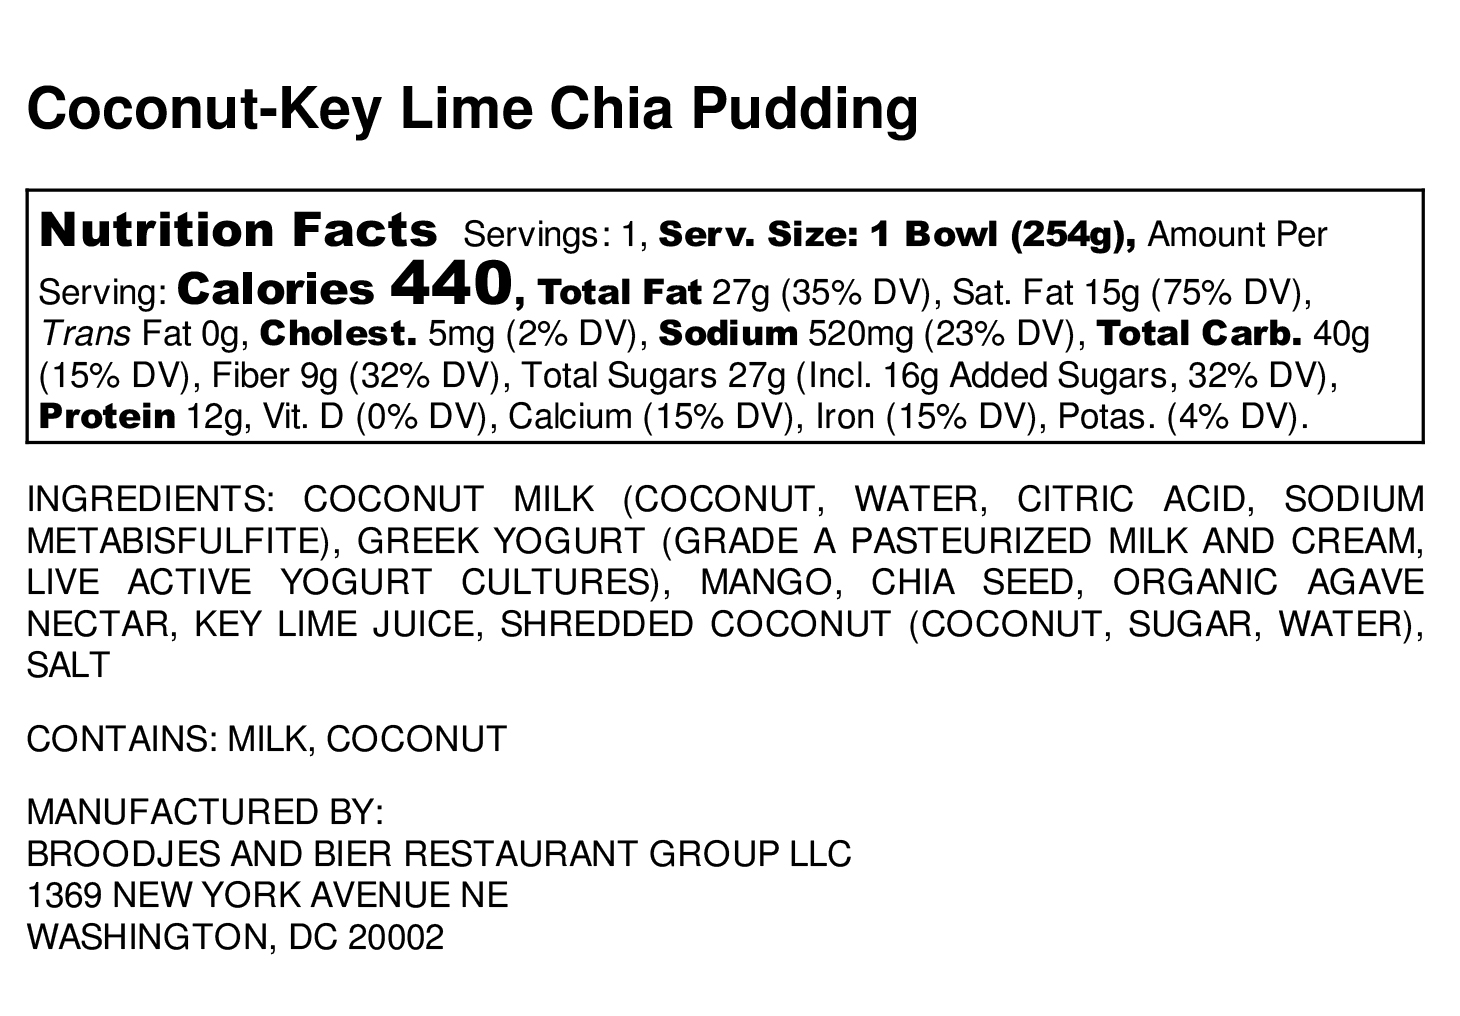 Coconut Key Lime Chia Pudding — Broodjes & Bier is now